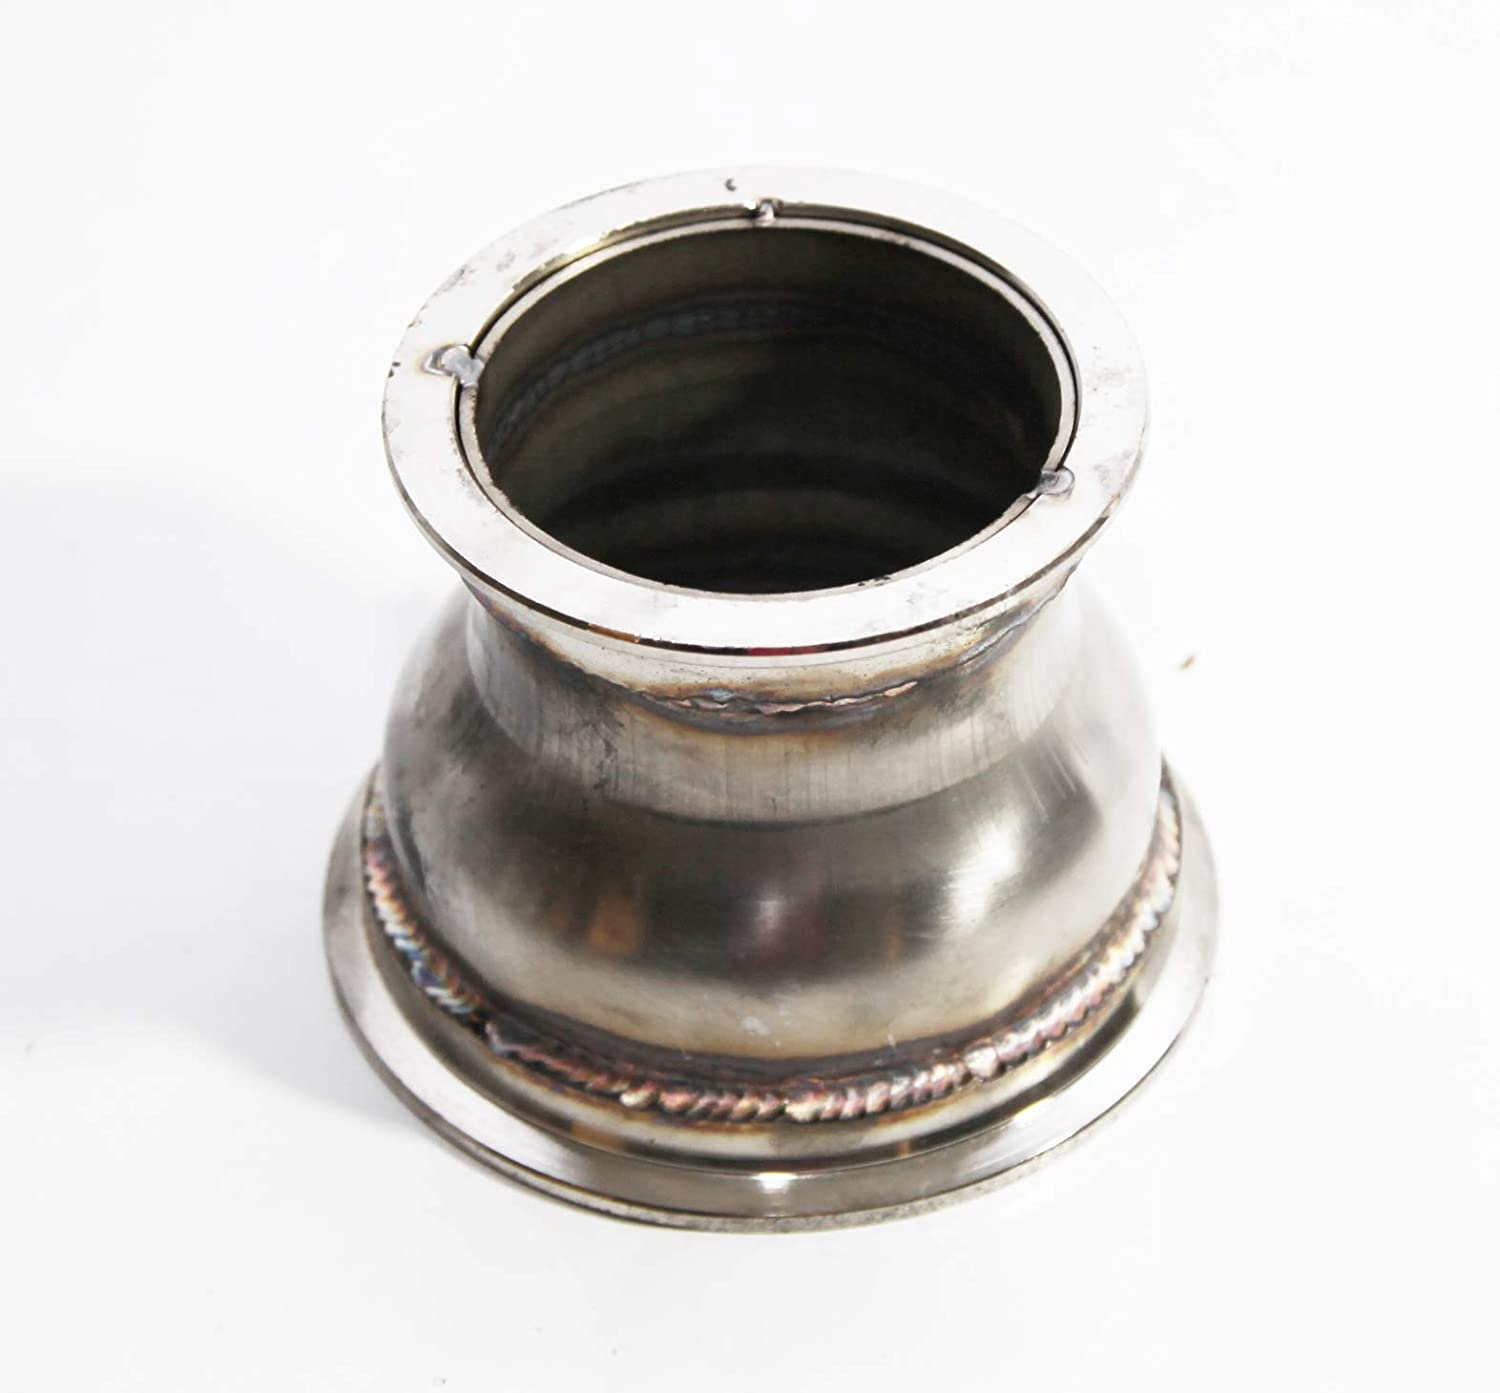 2.5ID to 4ID 3Height Universal Steel V-band Flange Adapter for Turbo Charger Downpipe Exhaust System Elbow Header